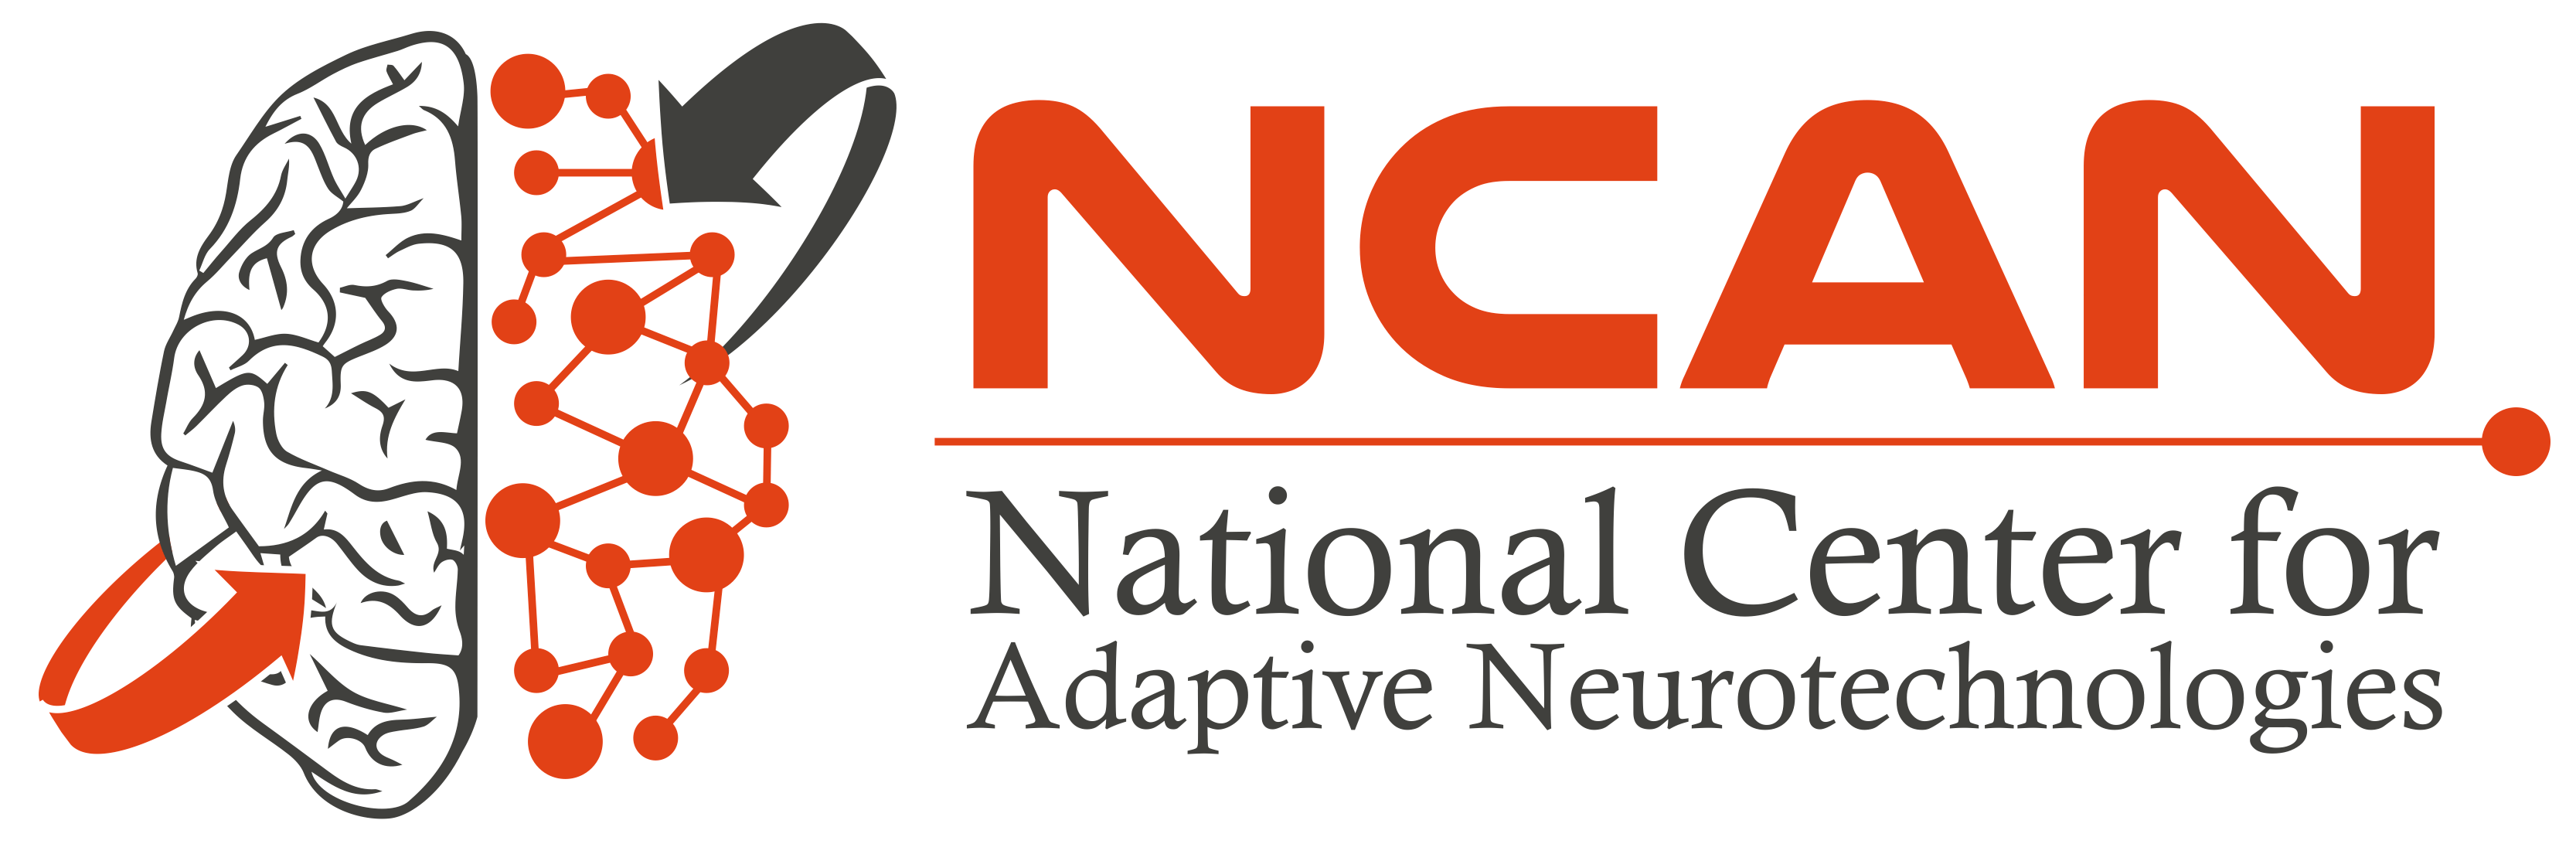 National Center for Adaptive Neurotechnologies